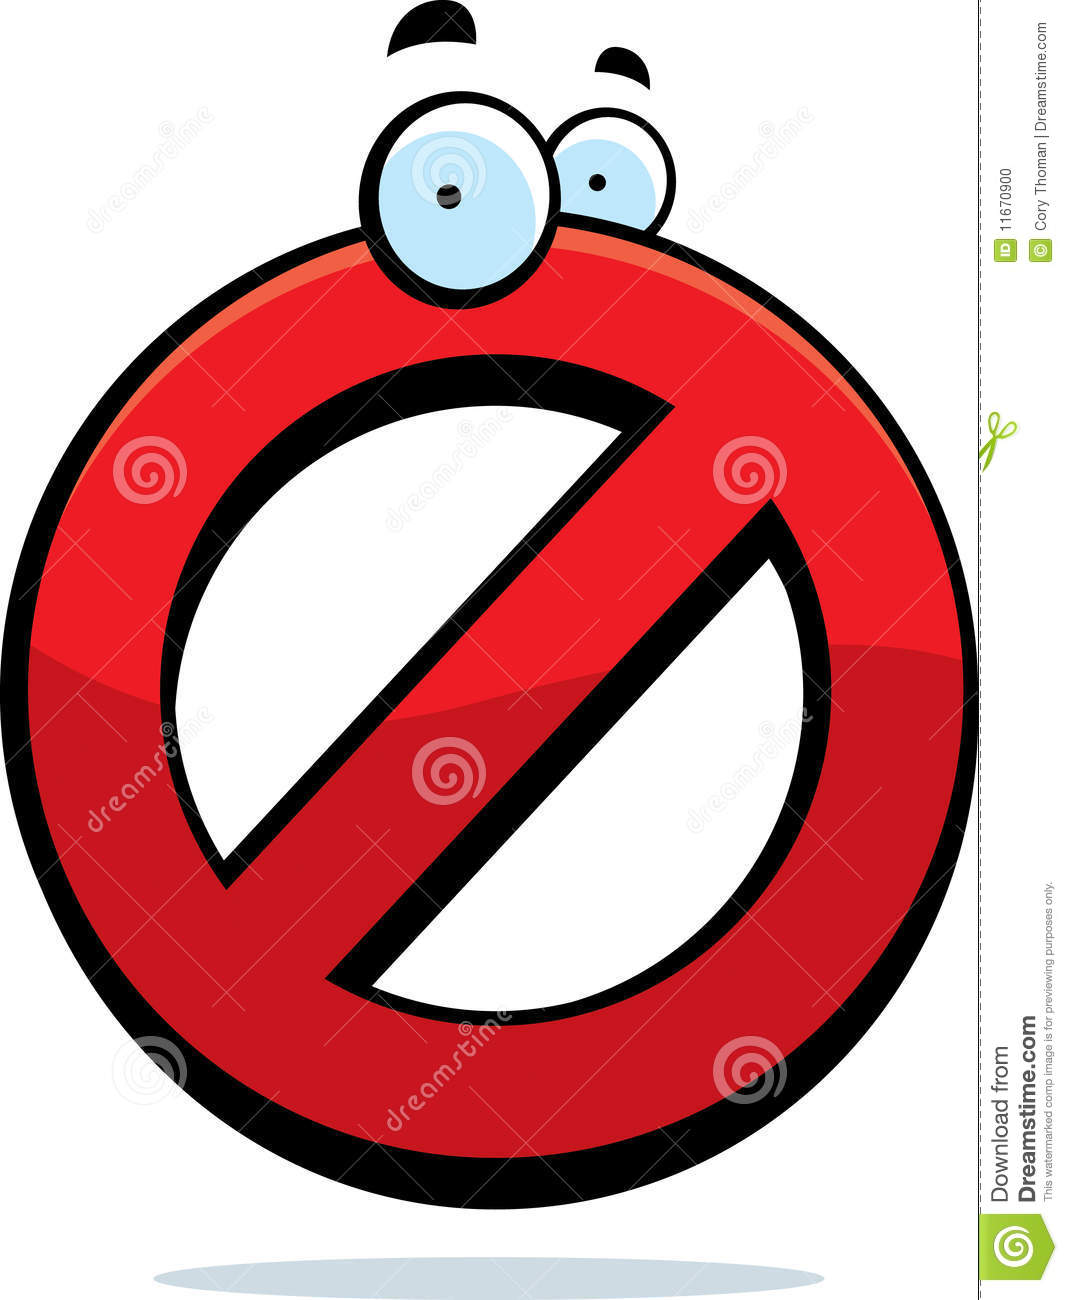 No Symbol Stock Photo - Image: 11670900